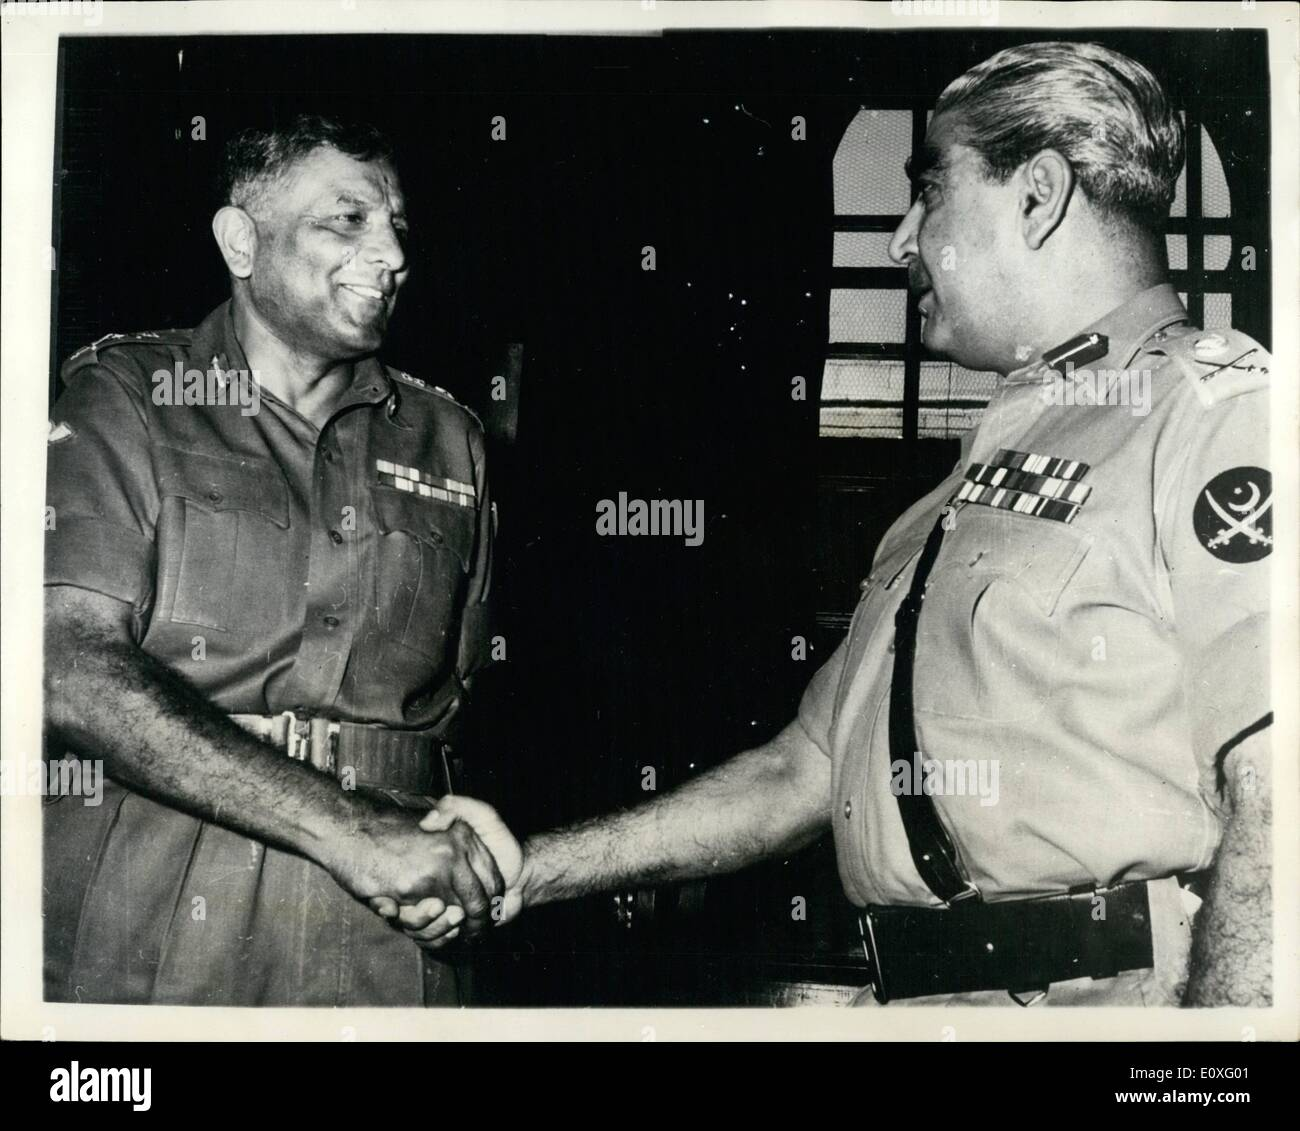 Sep. 09, 1966 - The Hand Of Friendship.: Lt. Gen. A.M. Yahya Khan, C-in-C designate of the Pakistan Army (on right), shakes hands with Gen. P.P, Kumaramangalam, Chief of the Army Staff, India, when he called on him for talks in New Delhi recently. - Stock Image